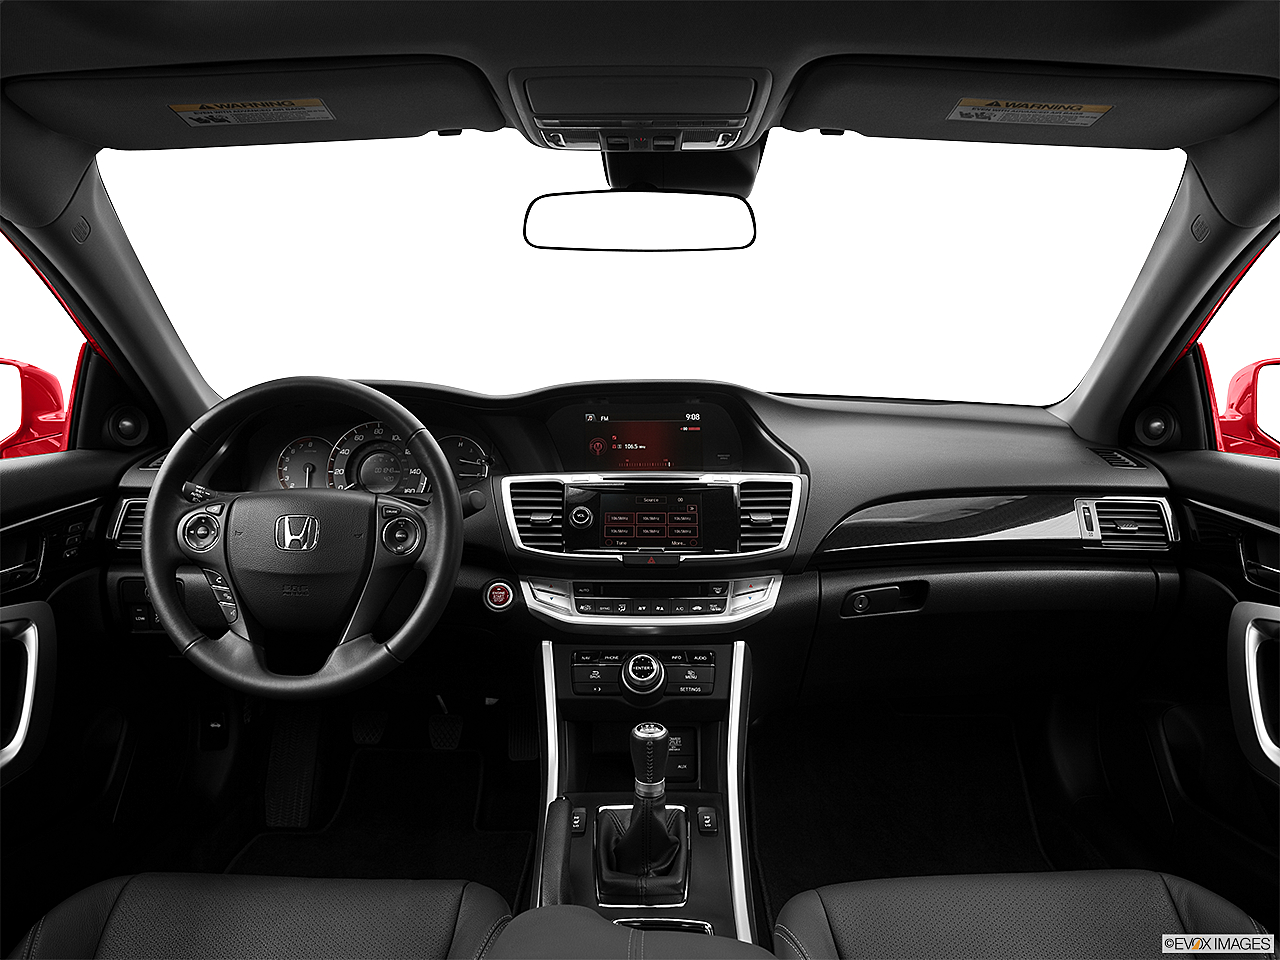 2013 Honda Accord EX-L V-6, centered wide dash shot